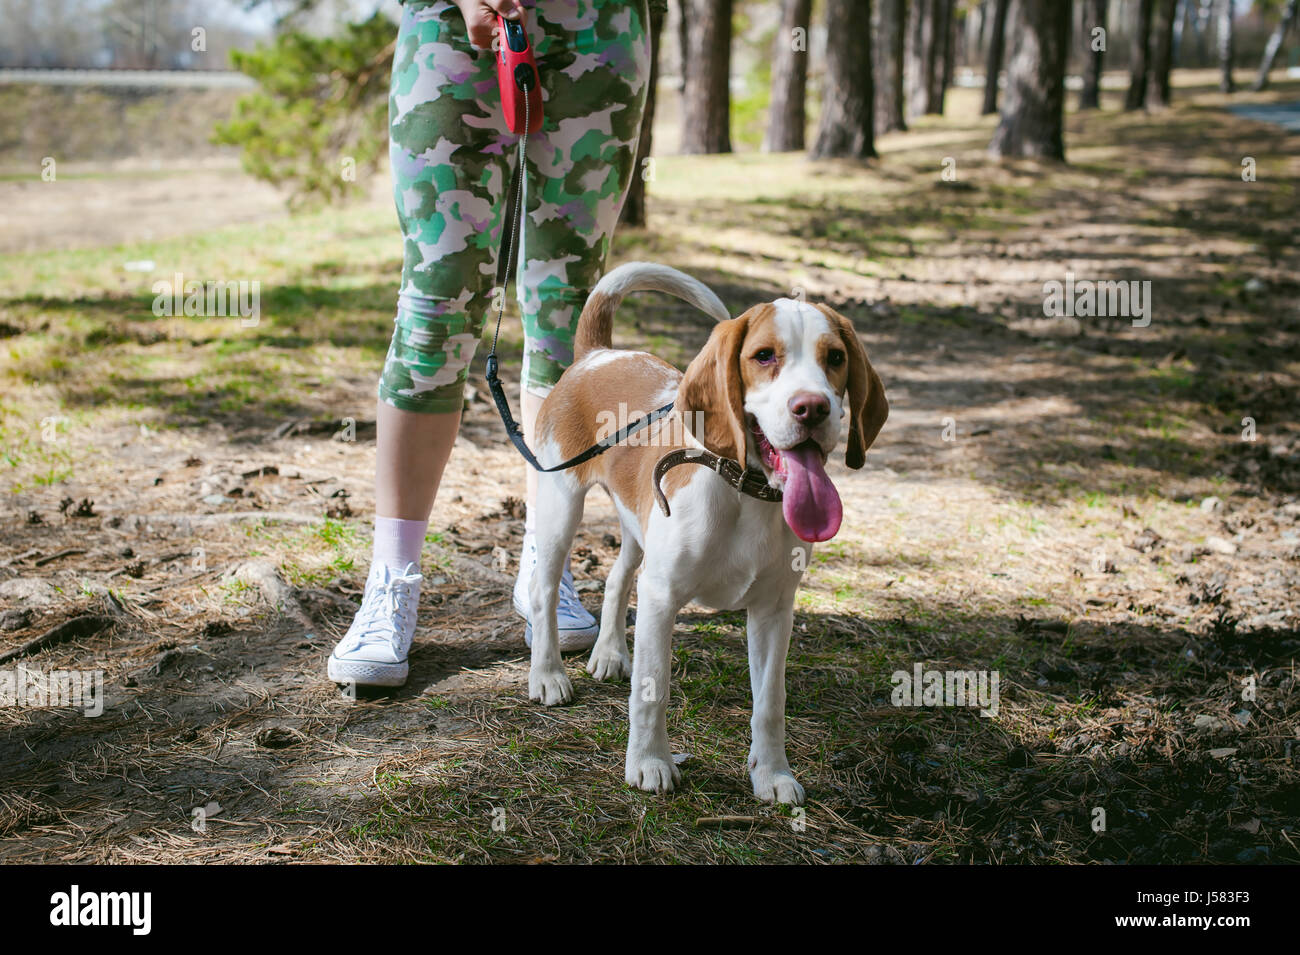 how to walk a puppy with an older dog